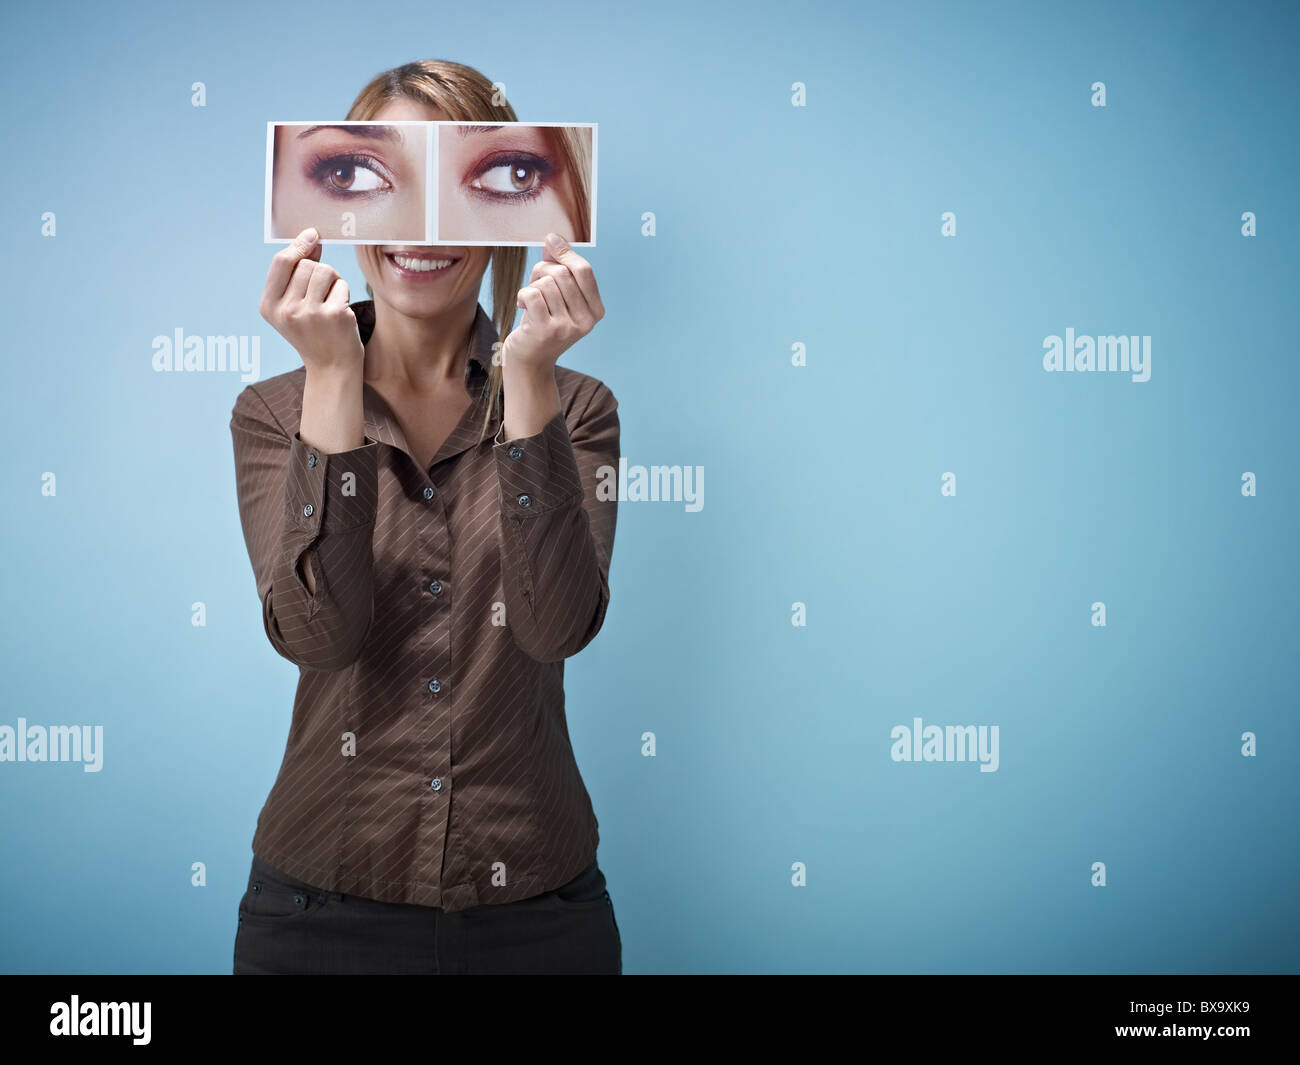 woman holding photo of cross eyes on blue background. Copy space - Stock Image